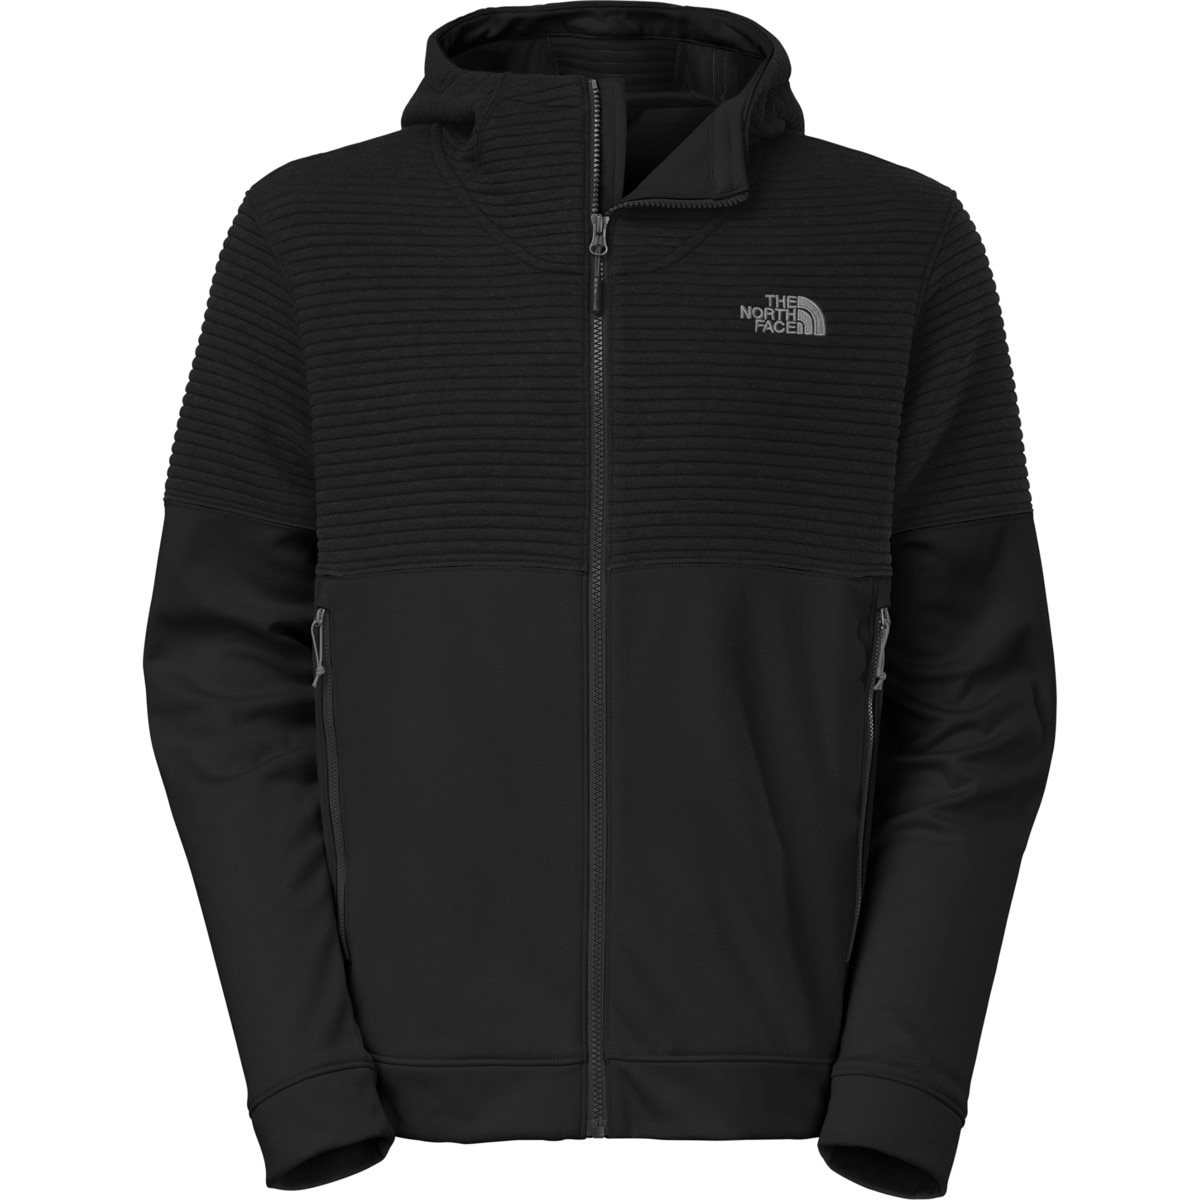 The North Face Brockton Hoodie